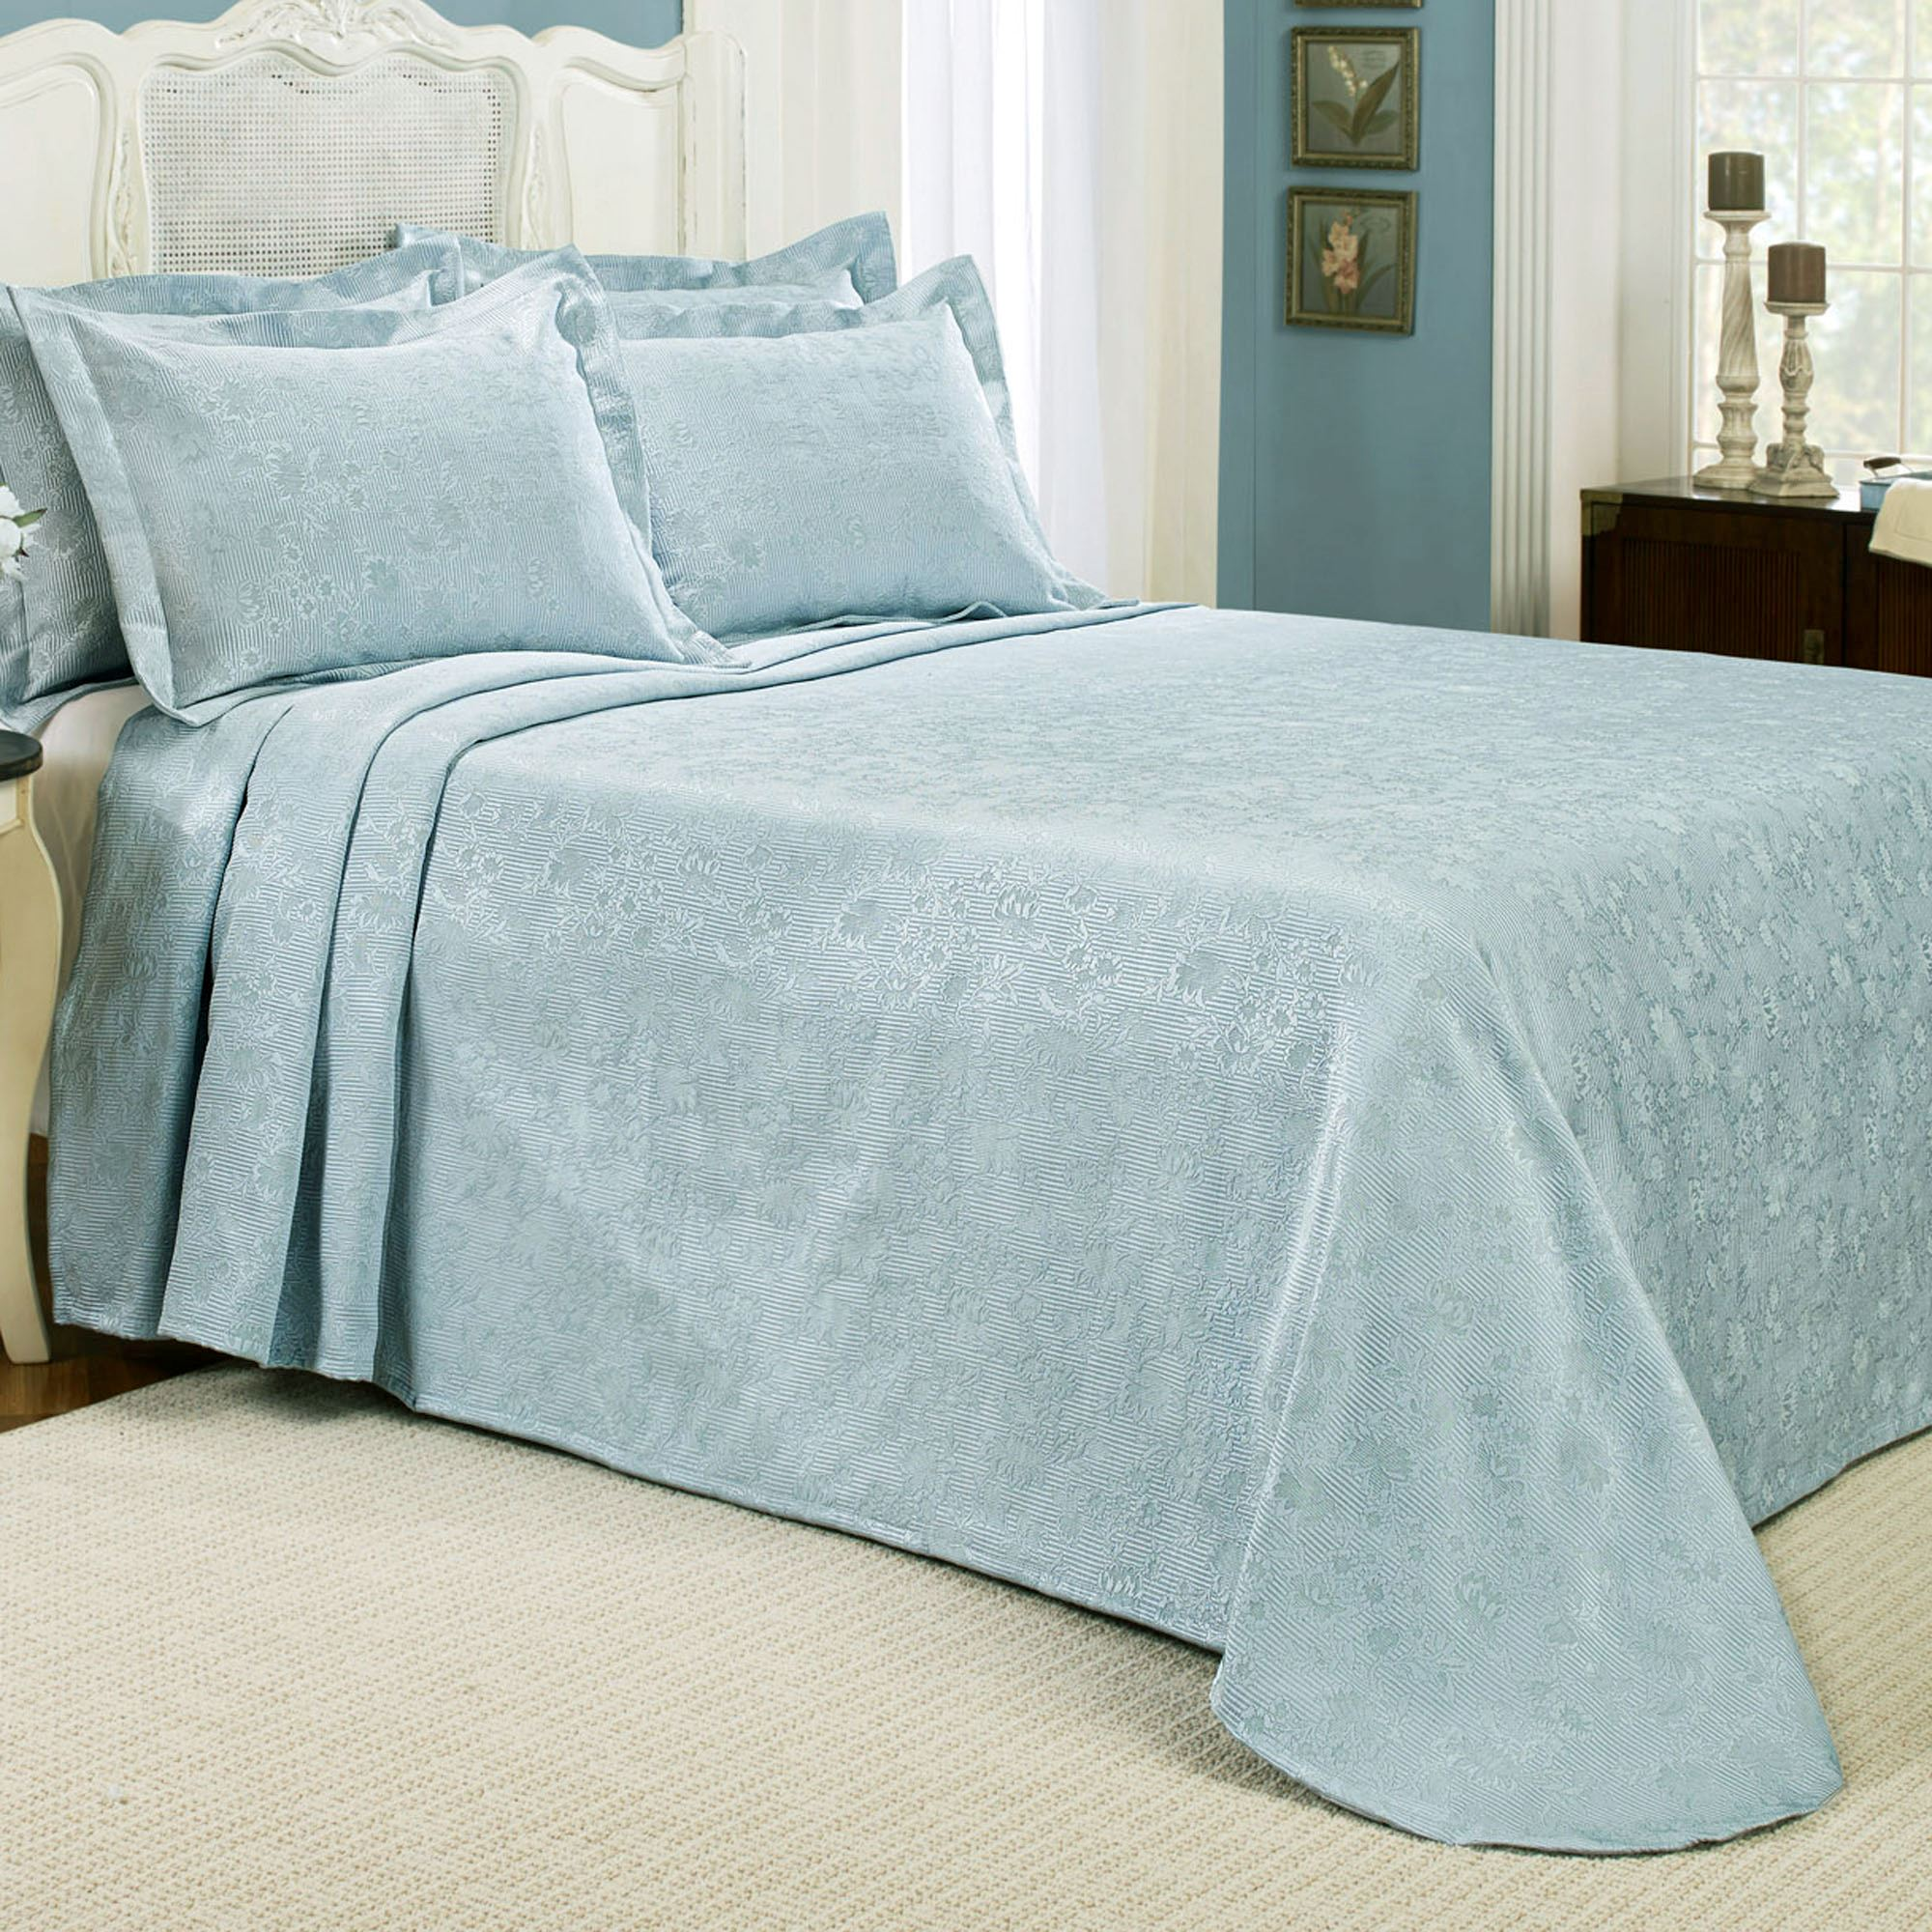 Matelasse Bedspreads | Chenille Bedspread | Old Fashioned Bedspreads